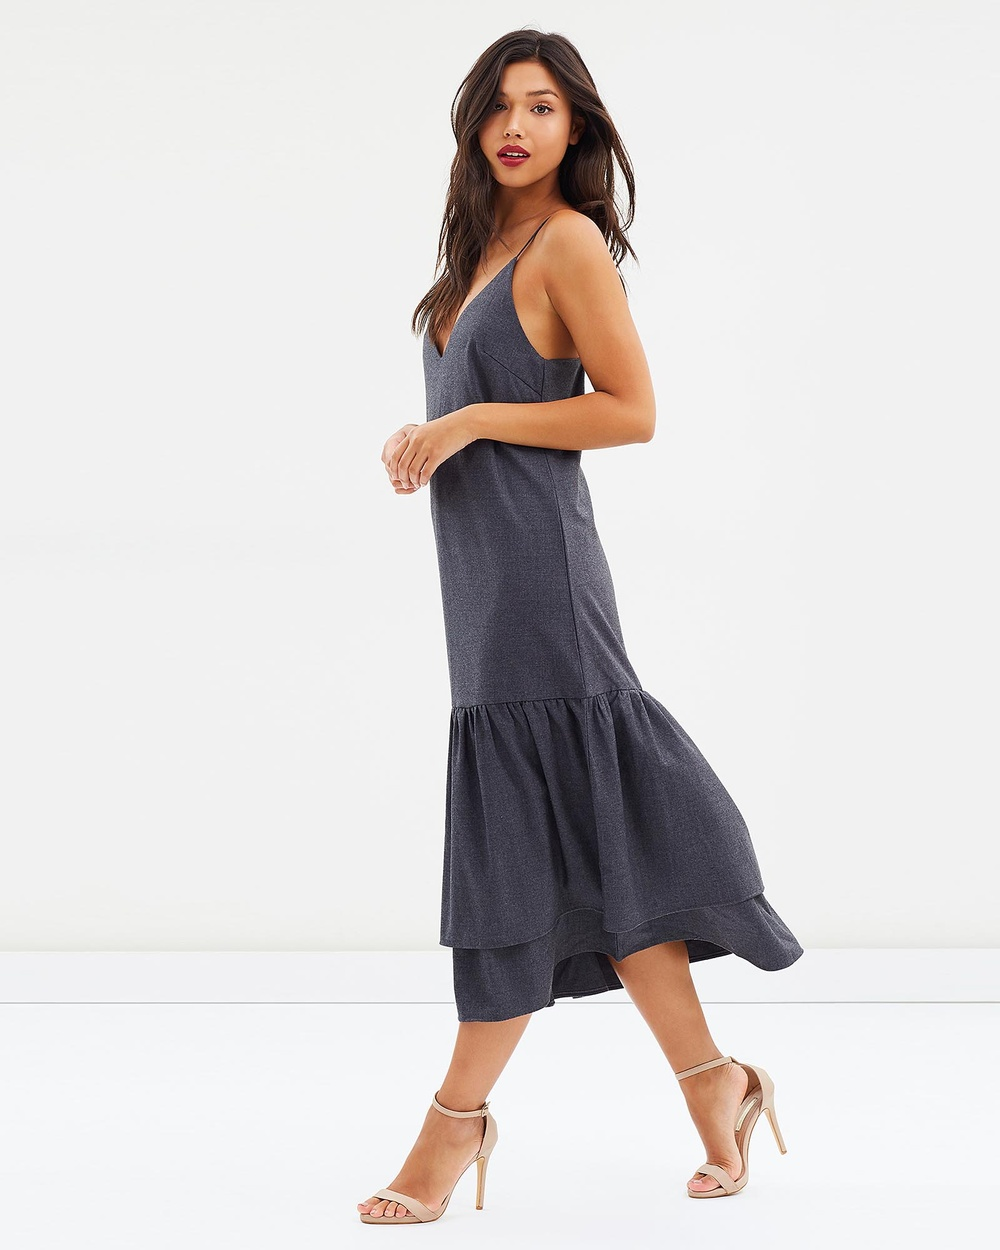 DELPHINE Convergence Dress Dresses Grey Convergence Dress